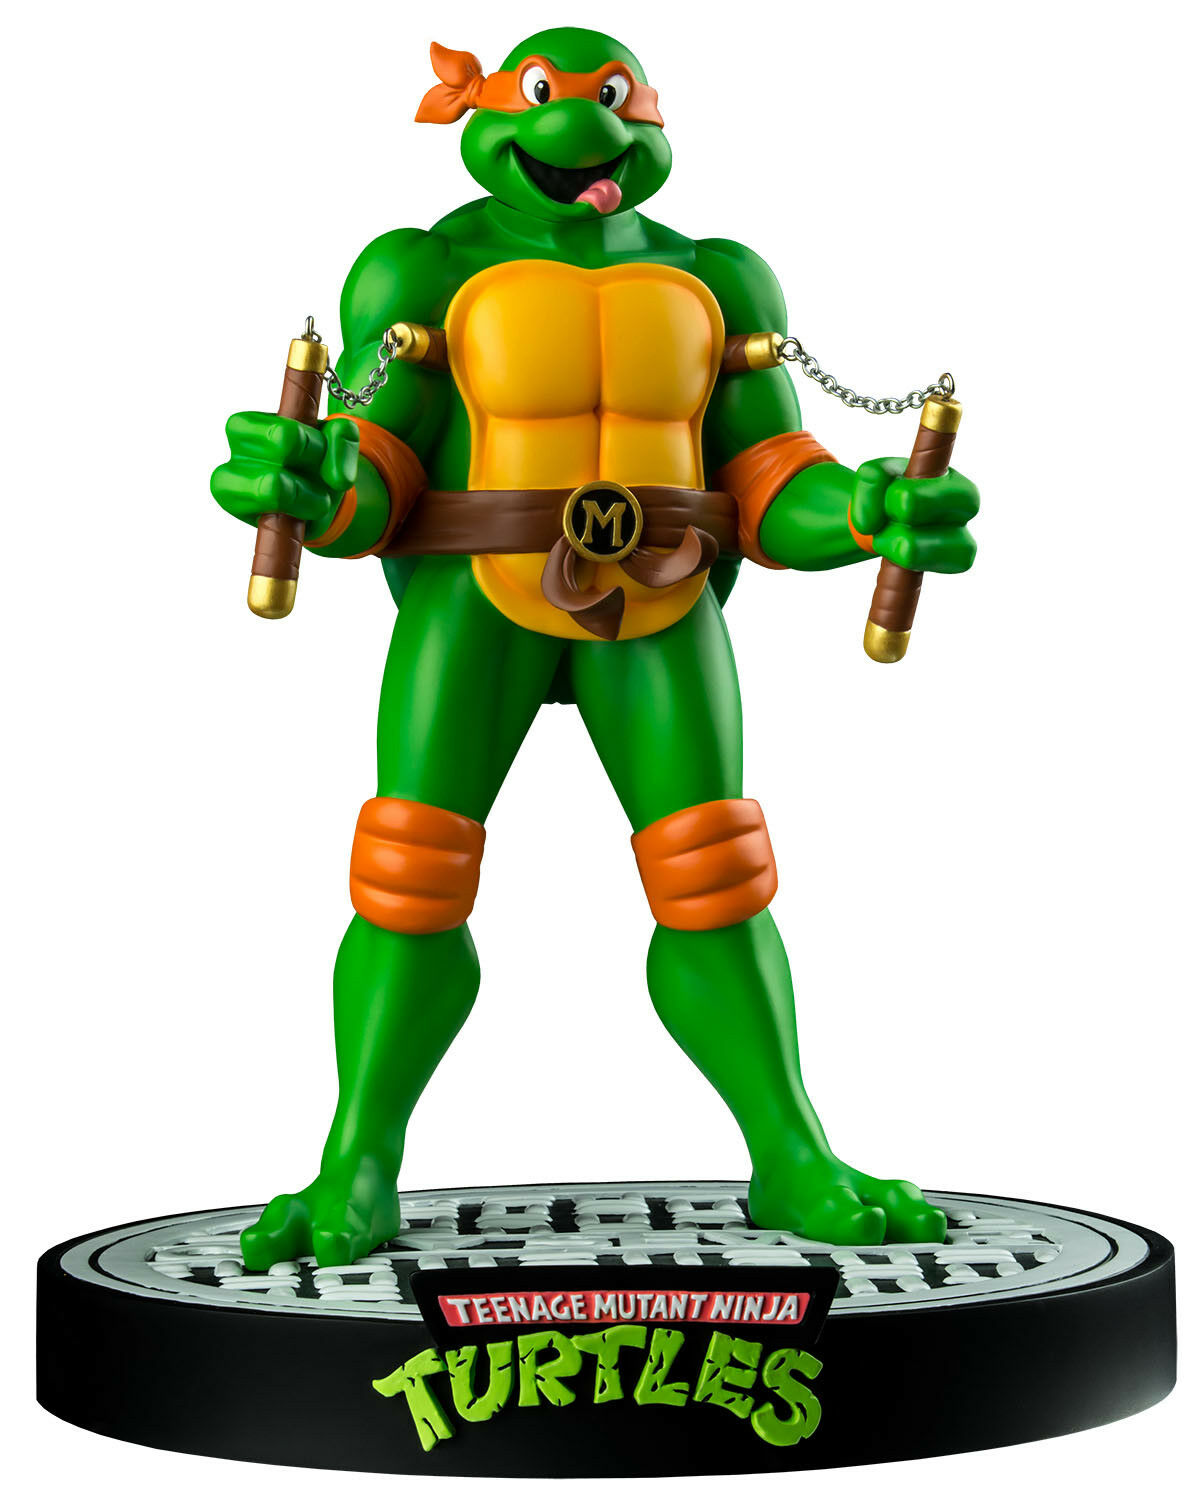 TEENAGE MUTANT NINJA TURTLES - Michelangelo 12  Statue Statue Statue (Ikon Collectables)  NEW 3329d2